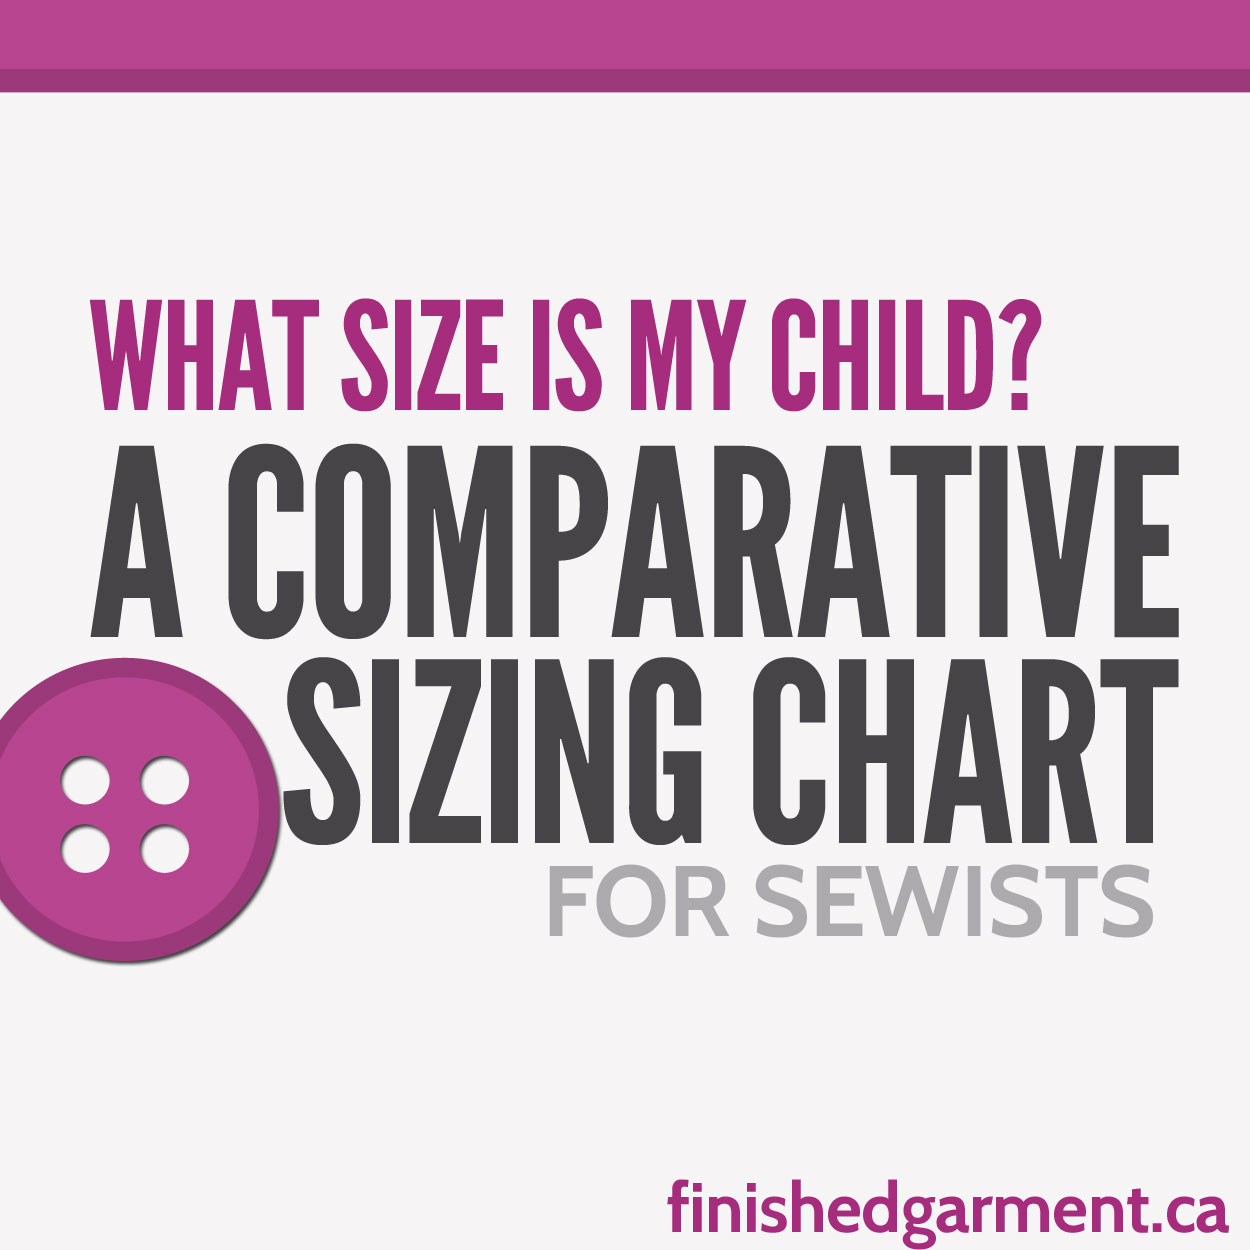 What size is my kid? Rough size chart equivalents for sewists